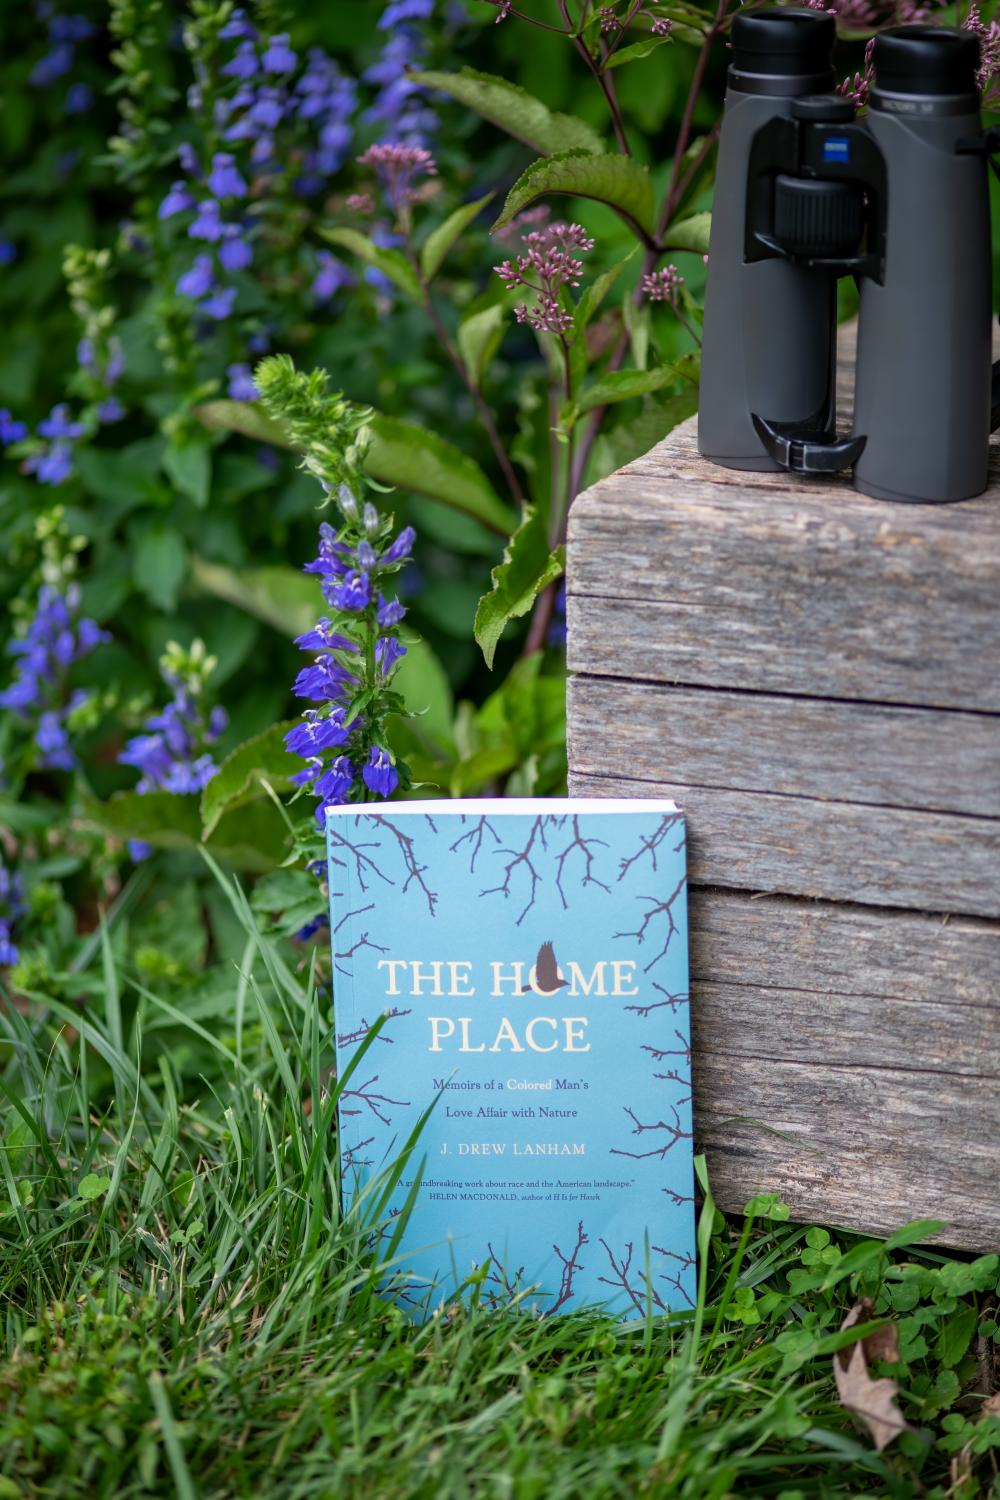 Picture of The Home Place Book in nature with binoculars